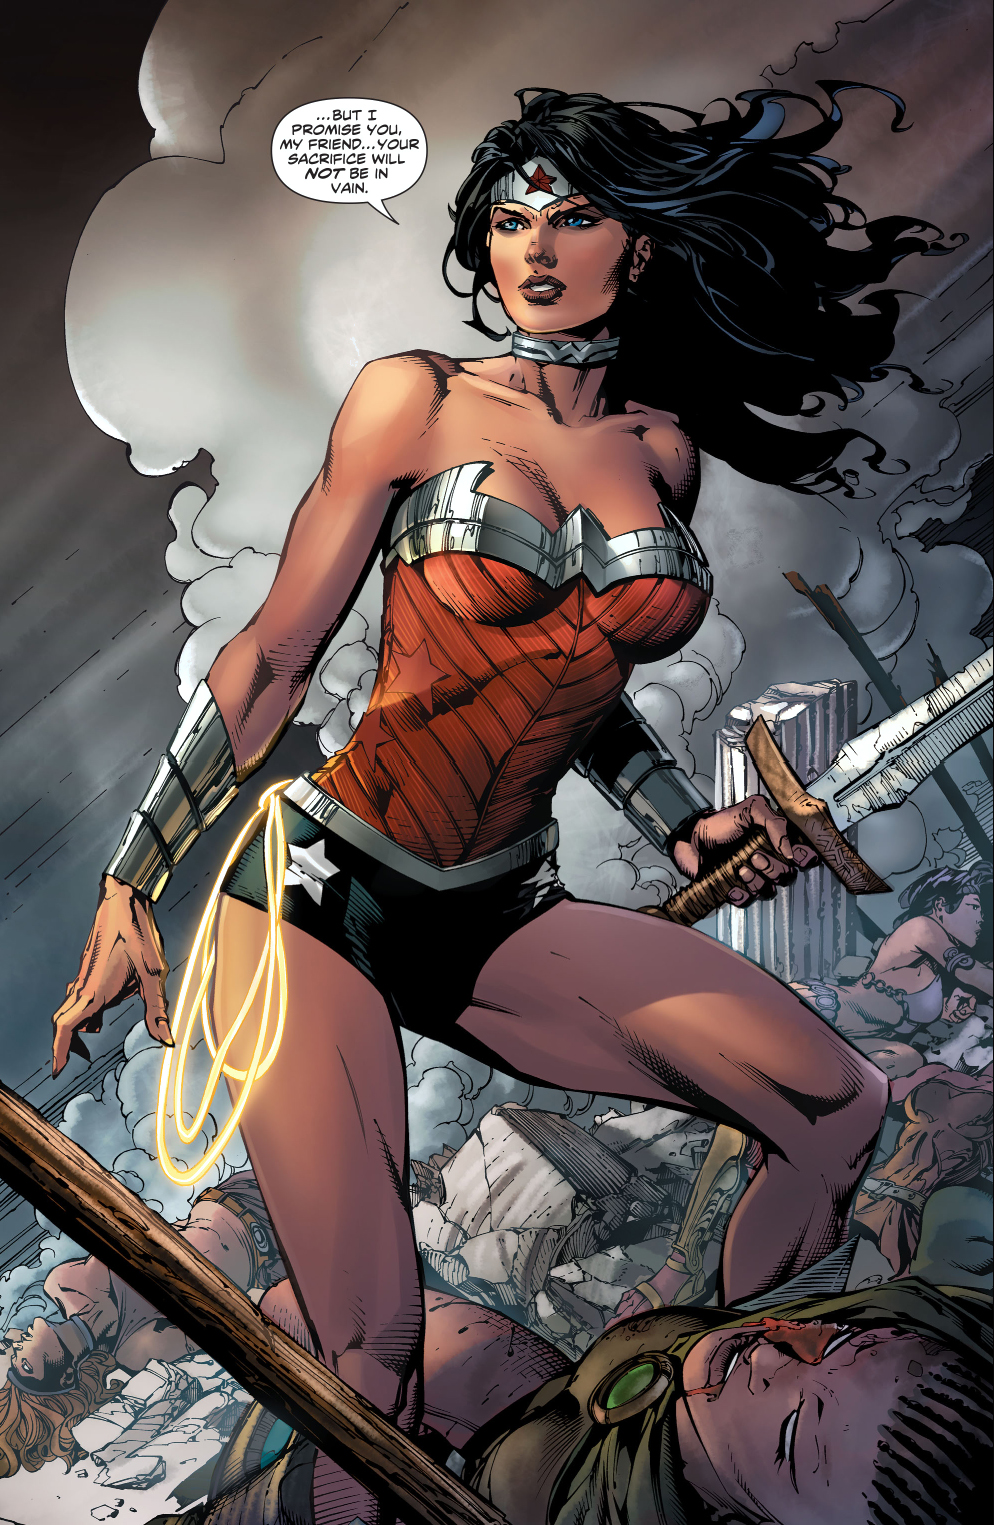 Wonder Woman (Wonder Woman Vol. 4 #38)